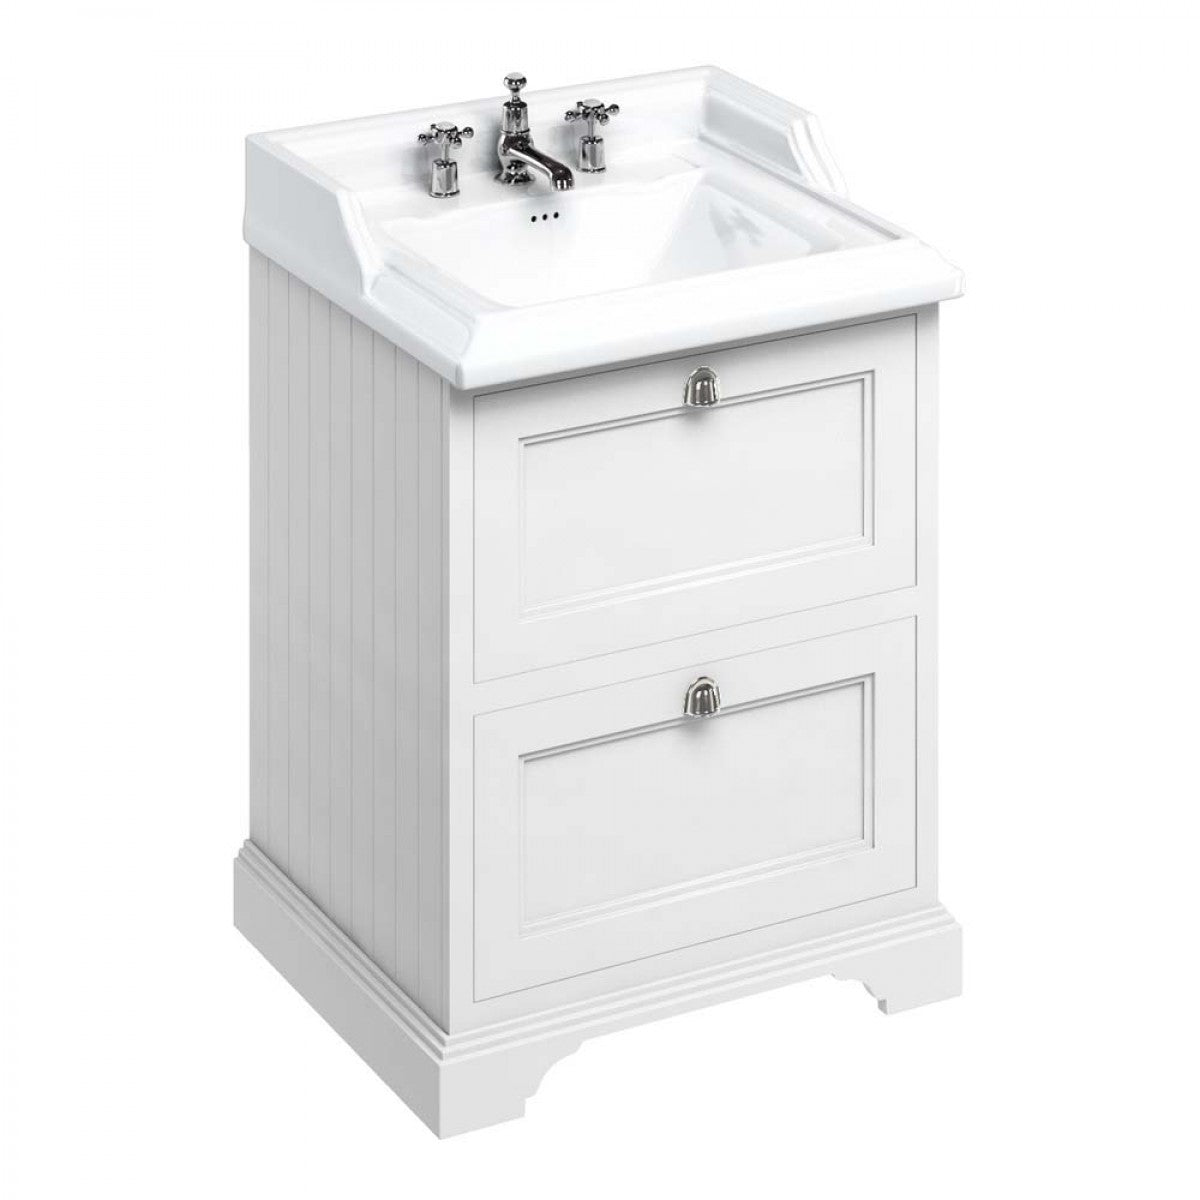 BURLINGTON FREESTANDING 65 VANITY UNIT WITH DRAWERS WITH CLASSIC BASIN - 654MM